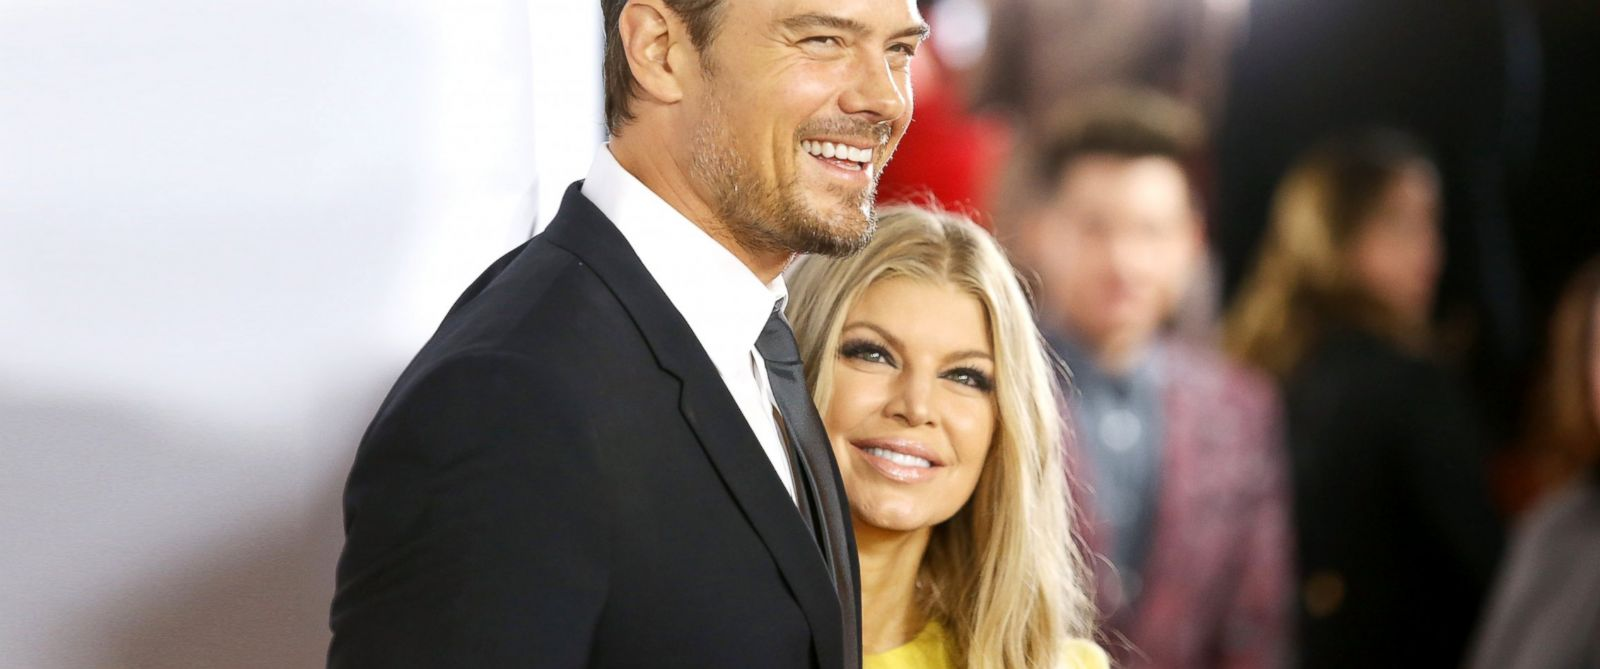 PHOTO: Josh Duhamel and Fergie Duhamel arrive at the 15th Annual Trevor Project Benefit held at Hollywood Palladium in Hollywood, Calif., Dec. 8, 2013.